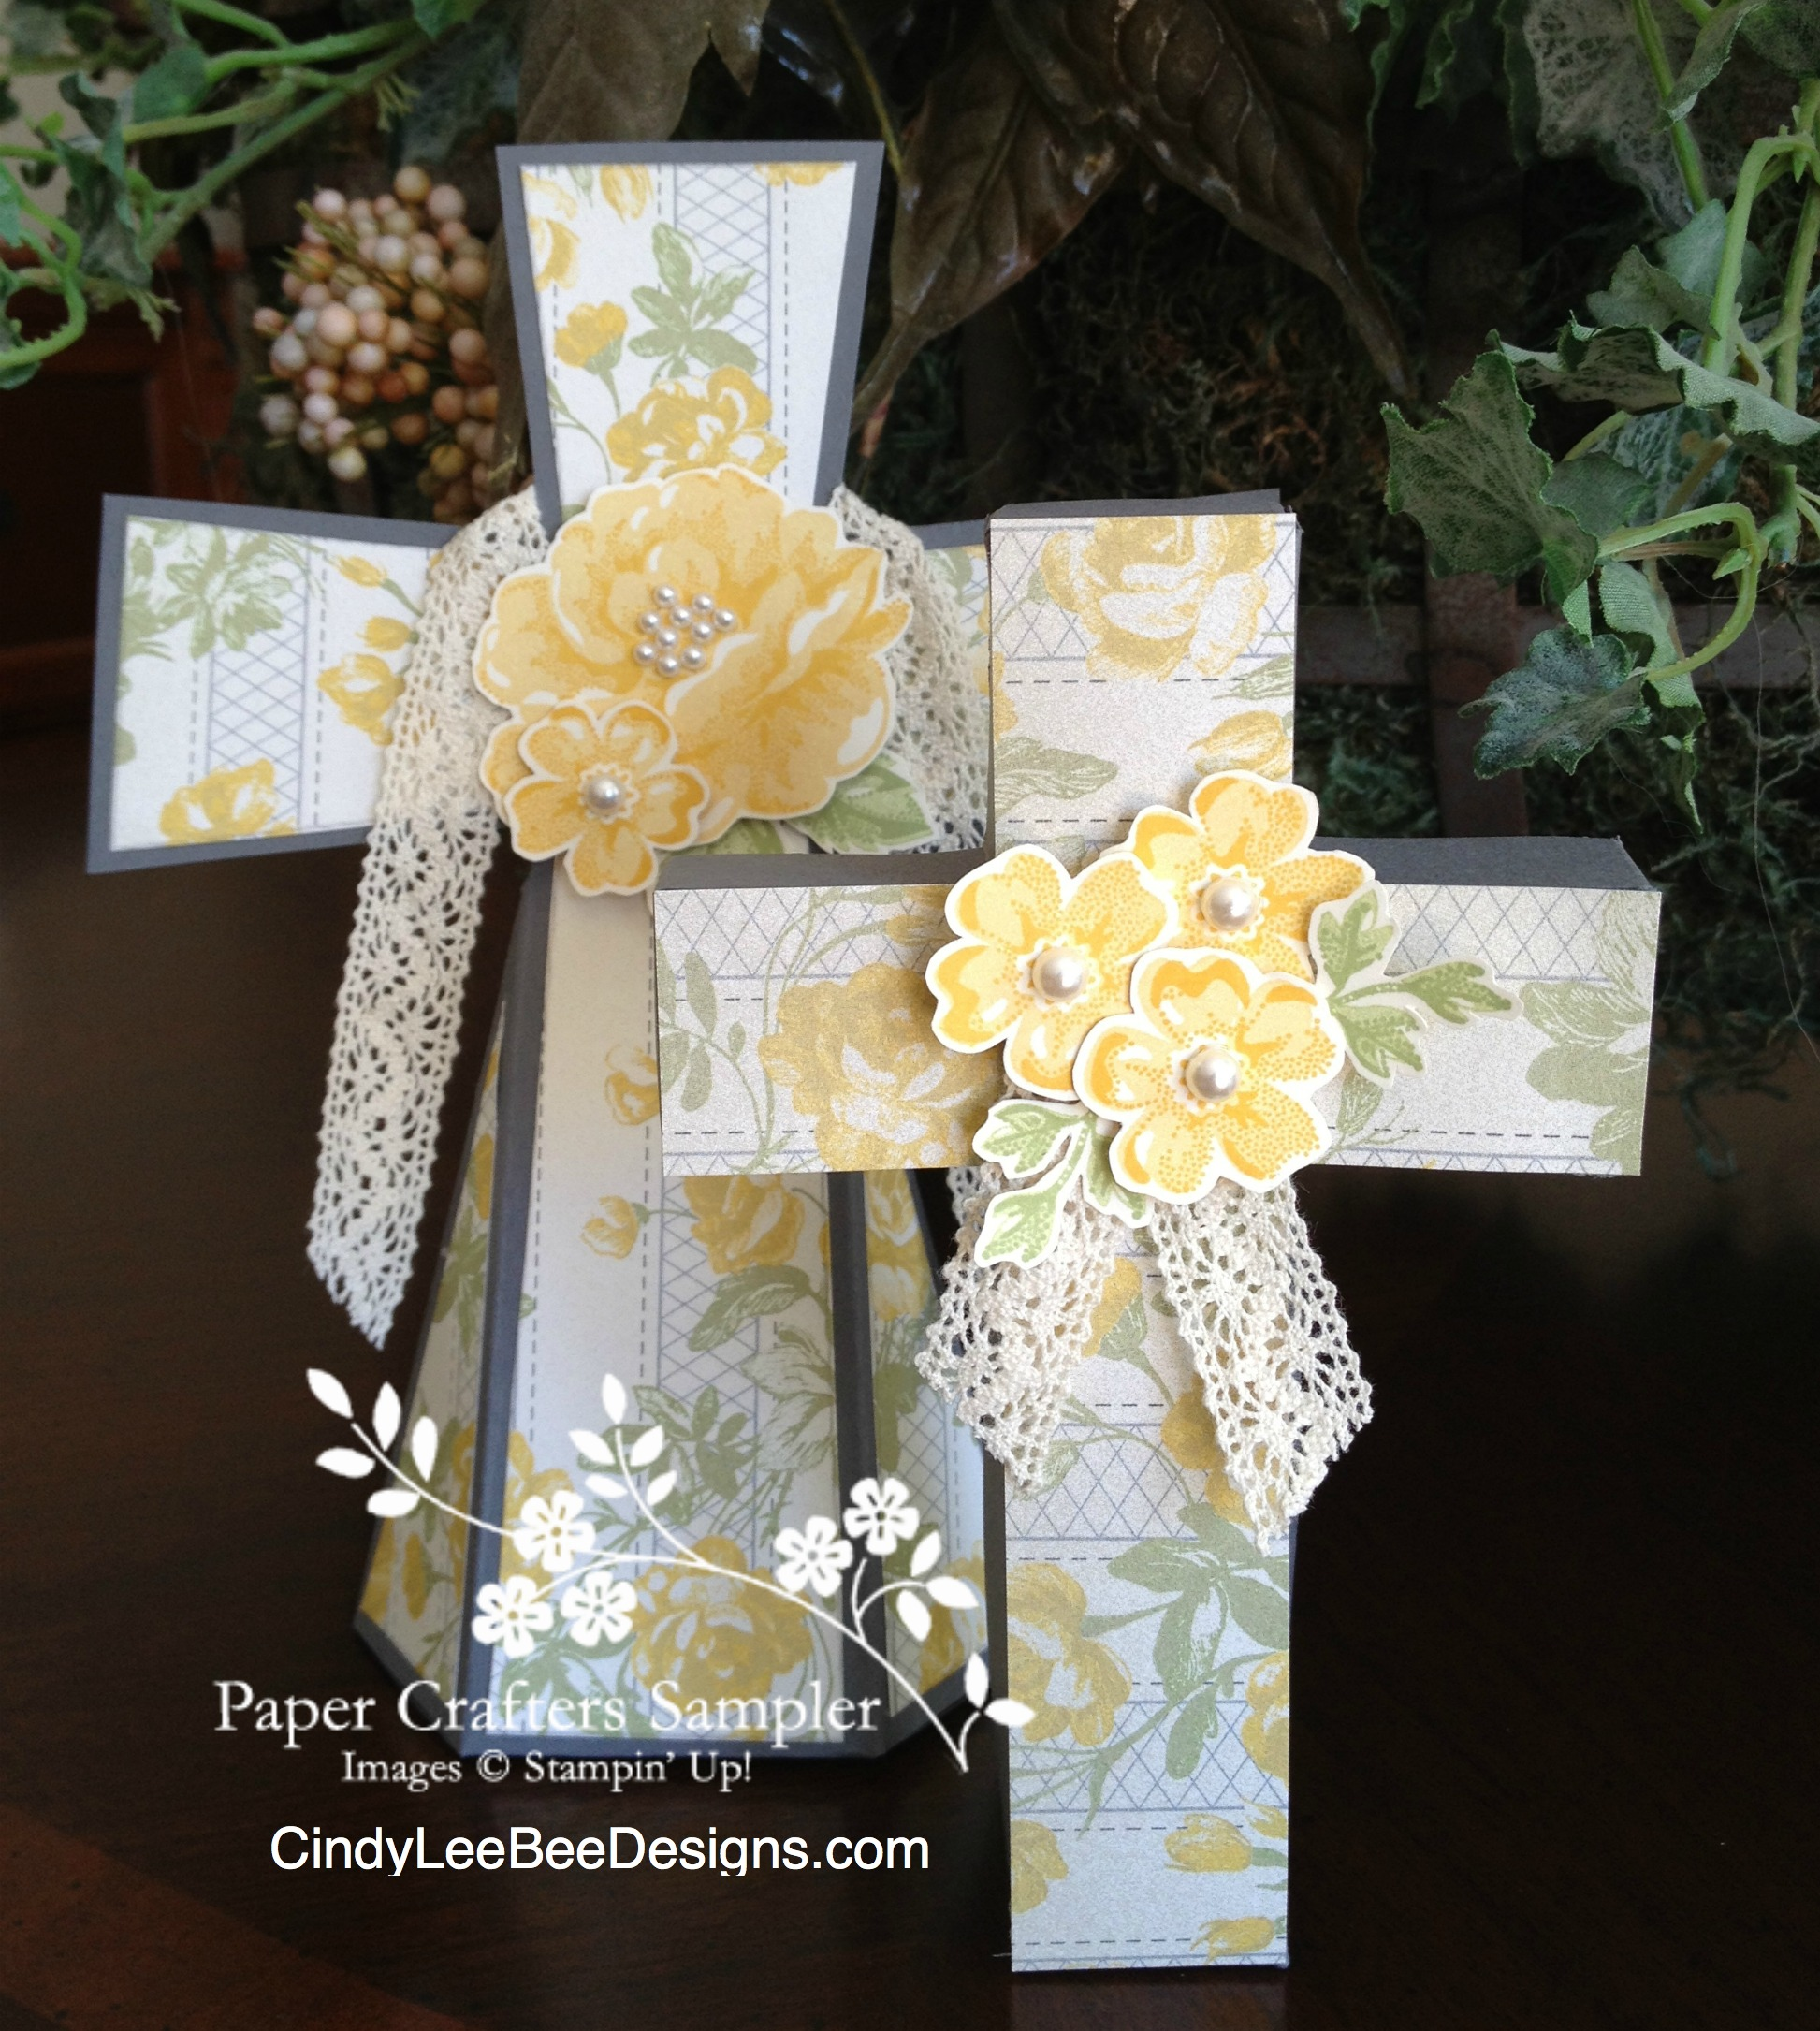 Paper Crafters Sampler Easter Cross Templates Cindy Lee Bee Designs